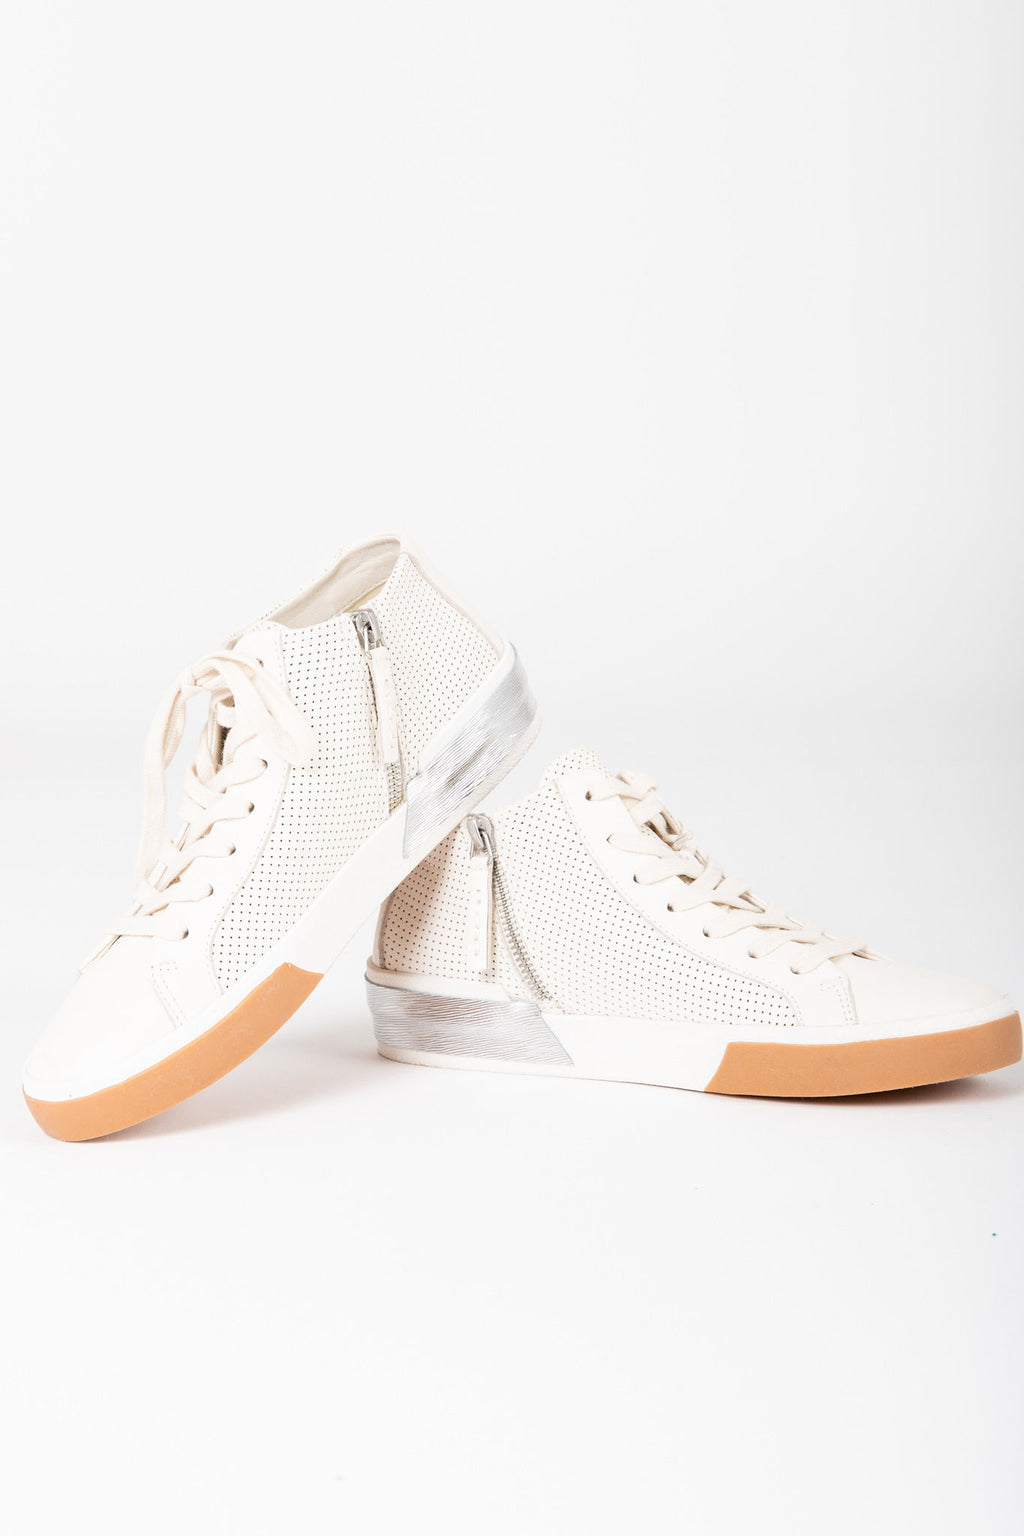 Dolce Vita: Zoel Sneakers in White Perforated Leather, studio shoot; side view